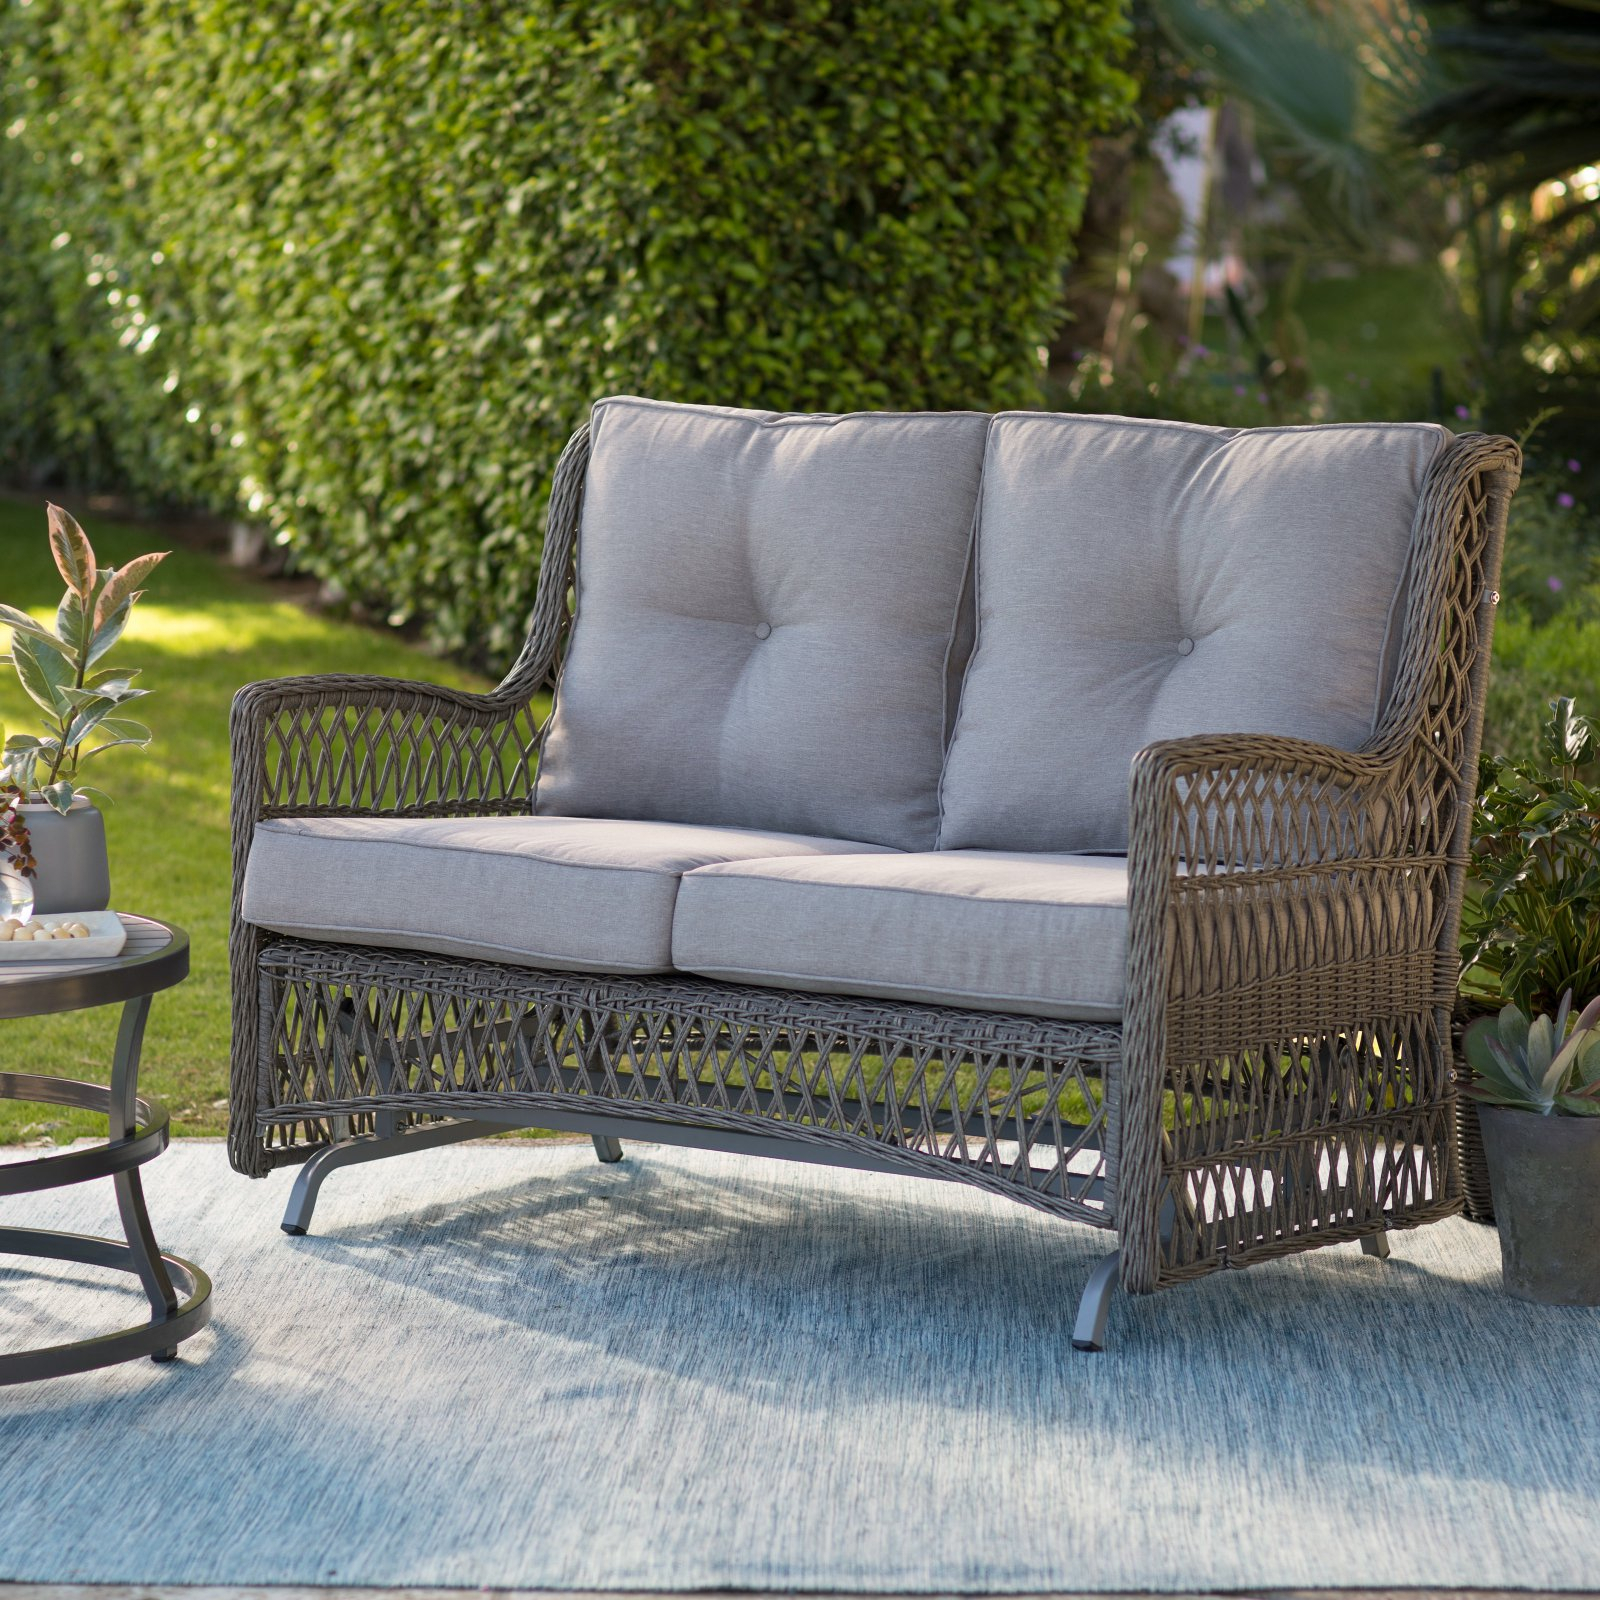 Belham Living Bristol Outdoor Glider Bench With Cushions Regarding Double Glider Benches With Cushion (Image 1 of 25)